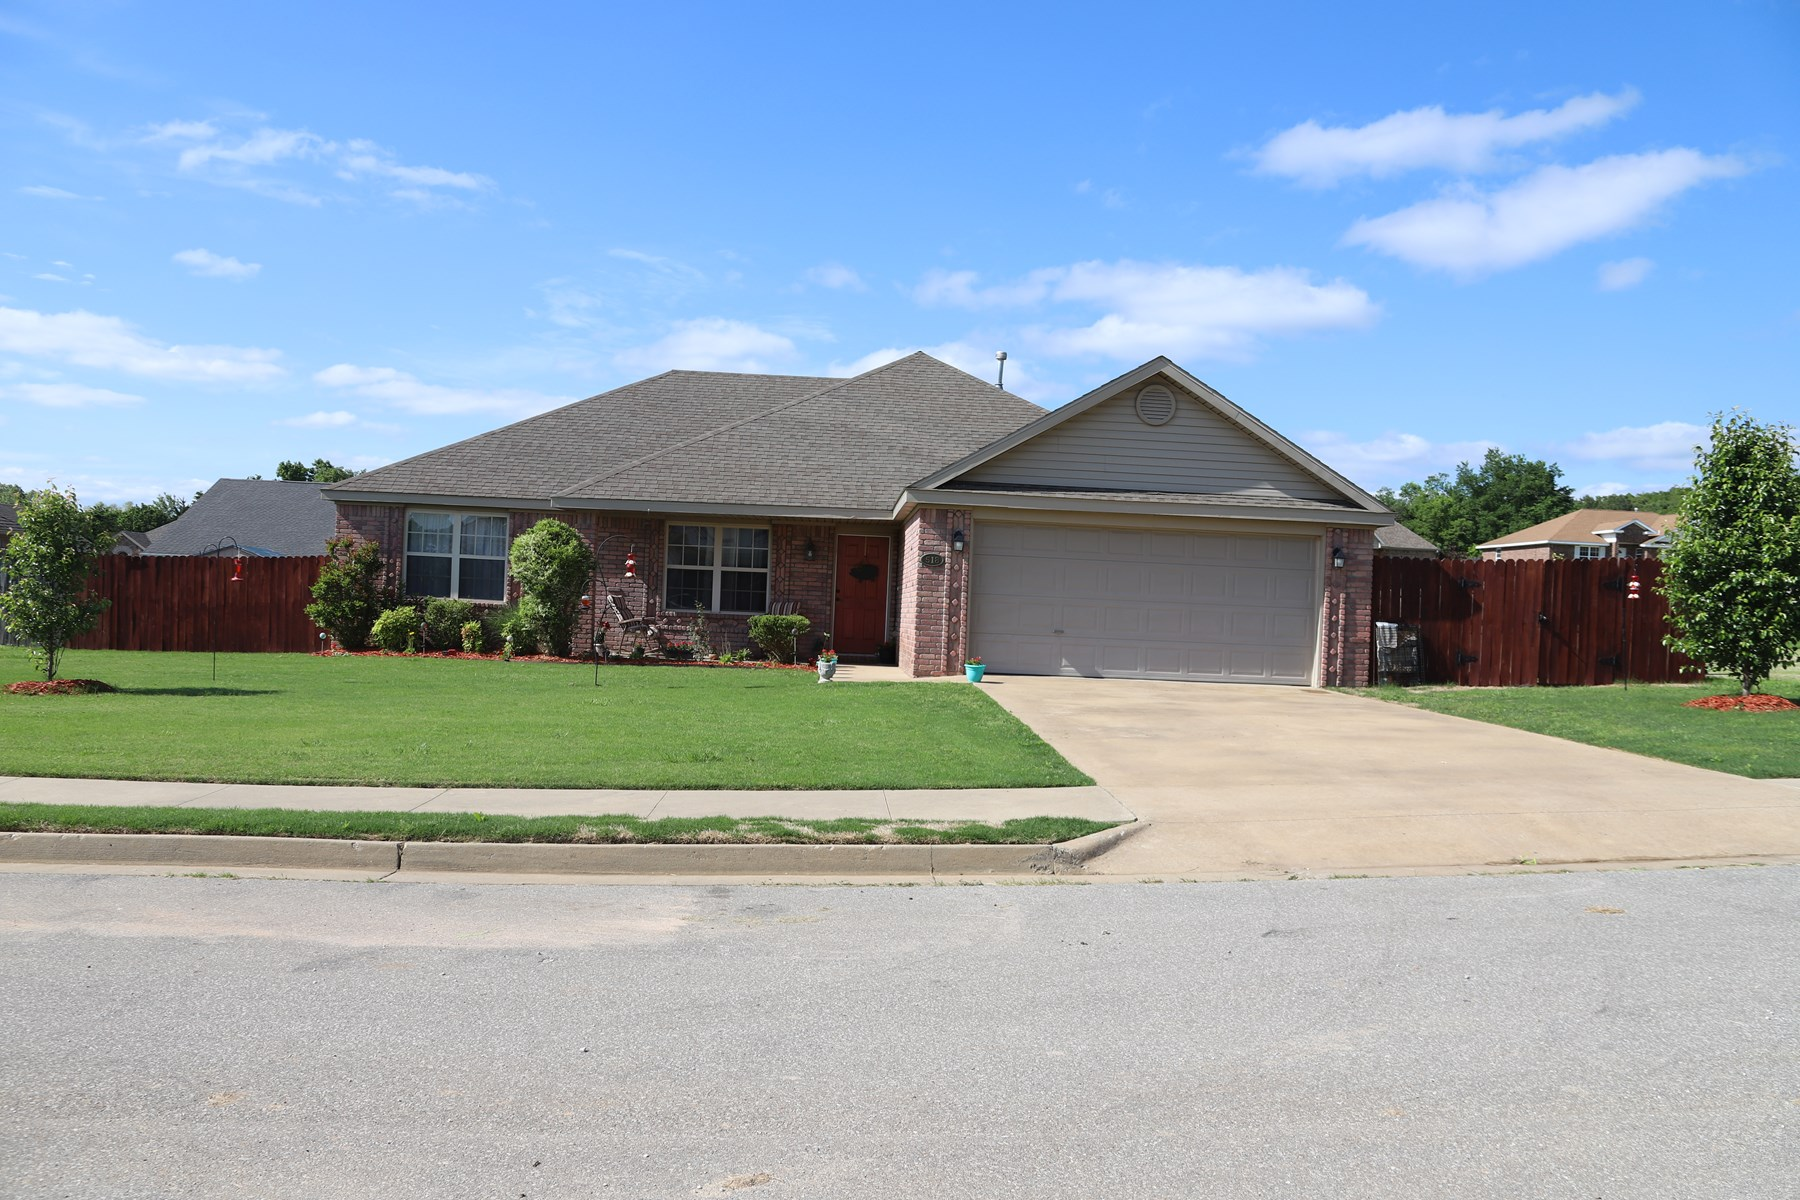 Northwest Arkansas 3 bedroom 2 bath Home in Town For Sale